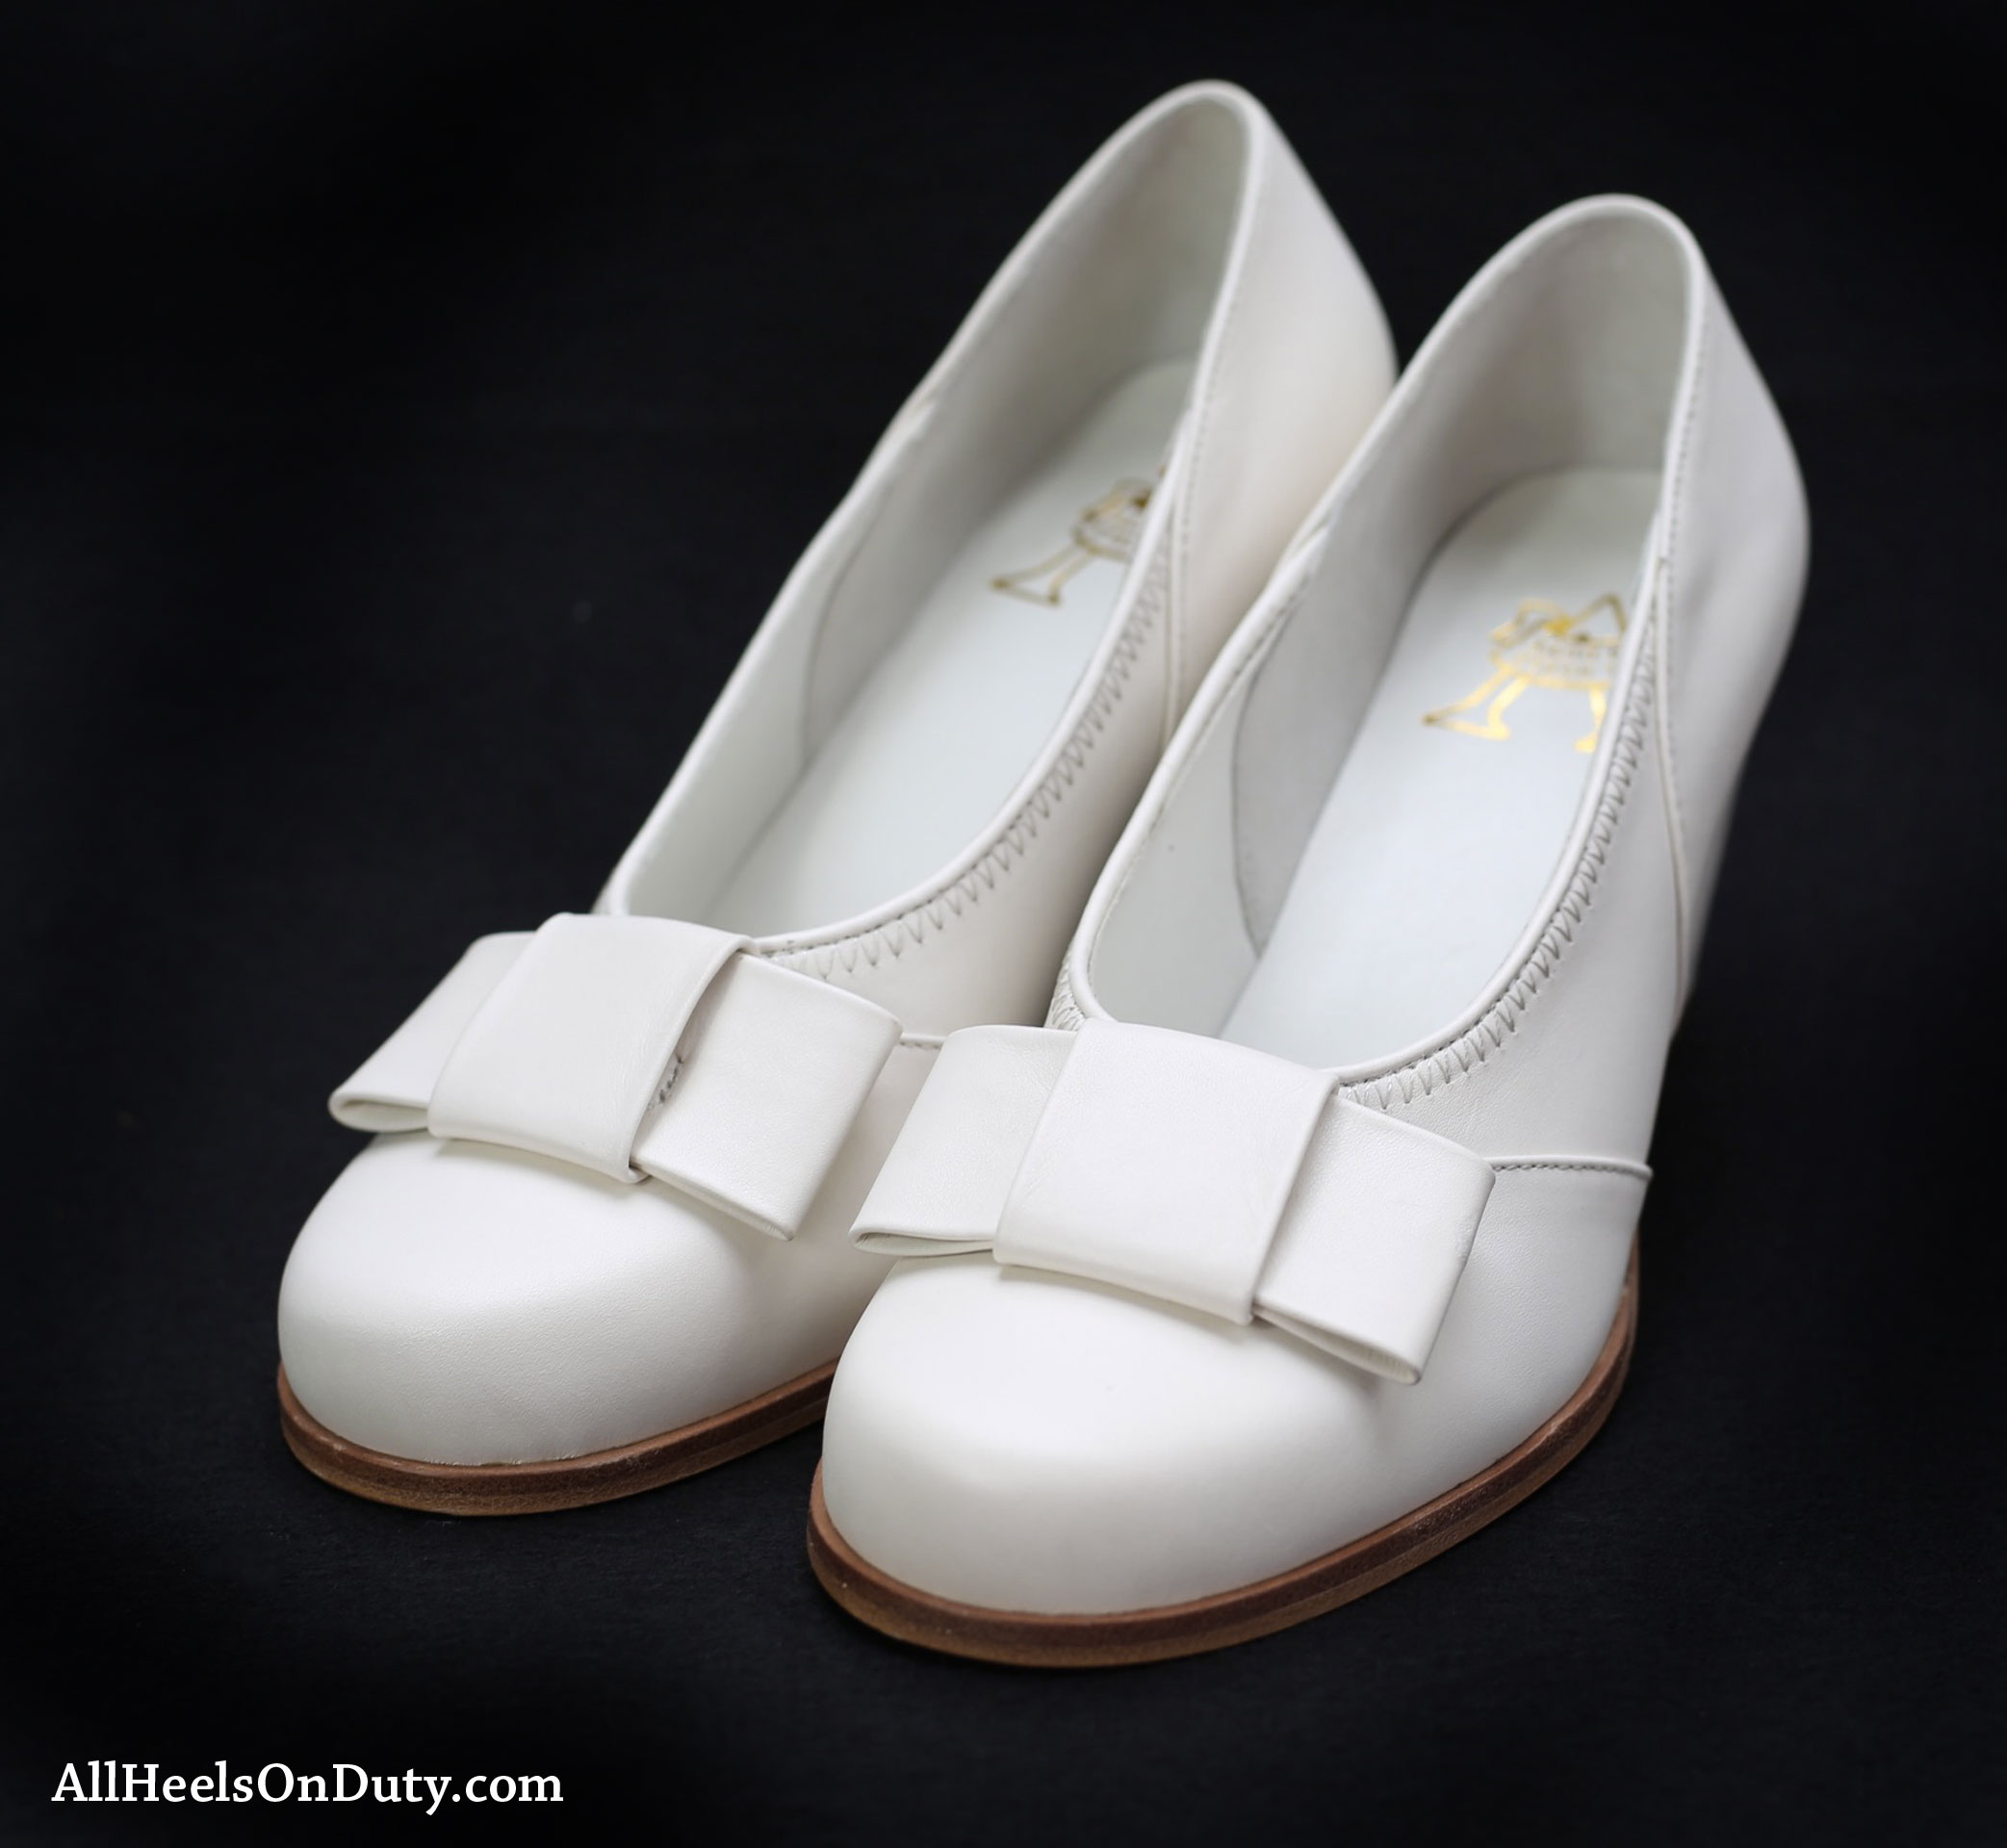 1940s White Bow Pumps - Make Way for